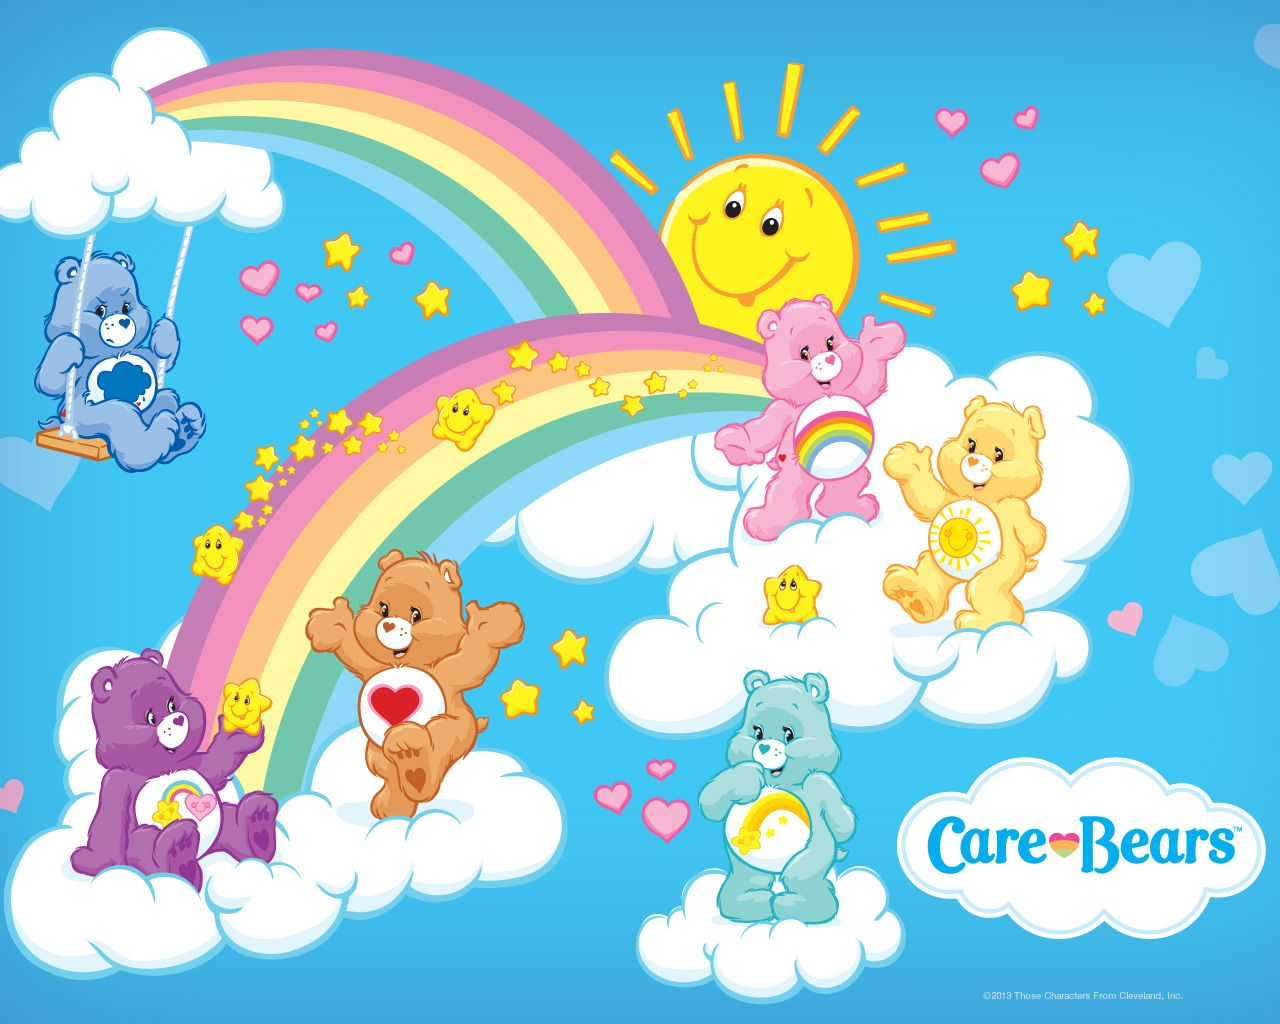 Care bear wallpaper images and wallpapers all free to care bear wallpaper images and wallpapers all free to download voltagebd Gallery